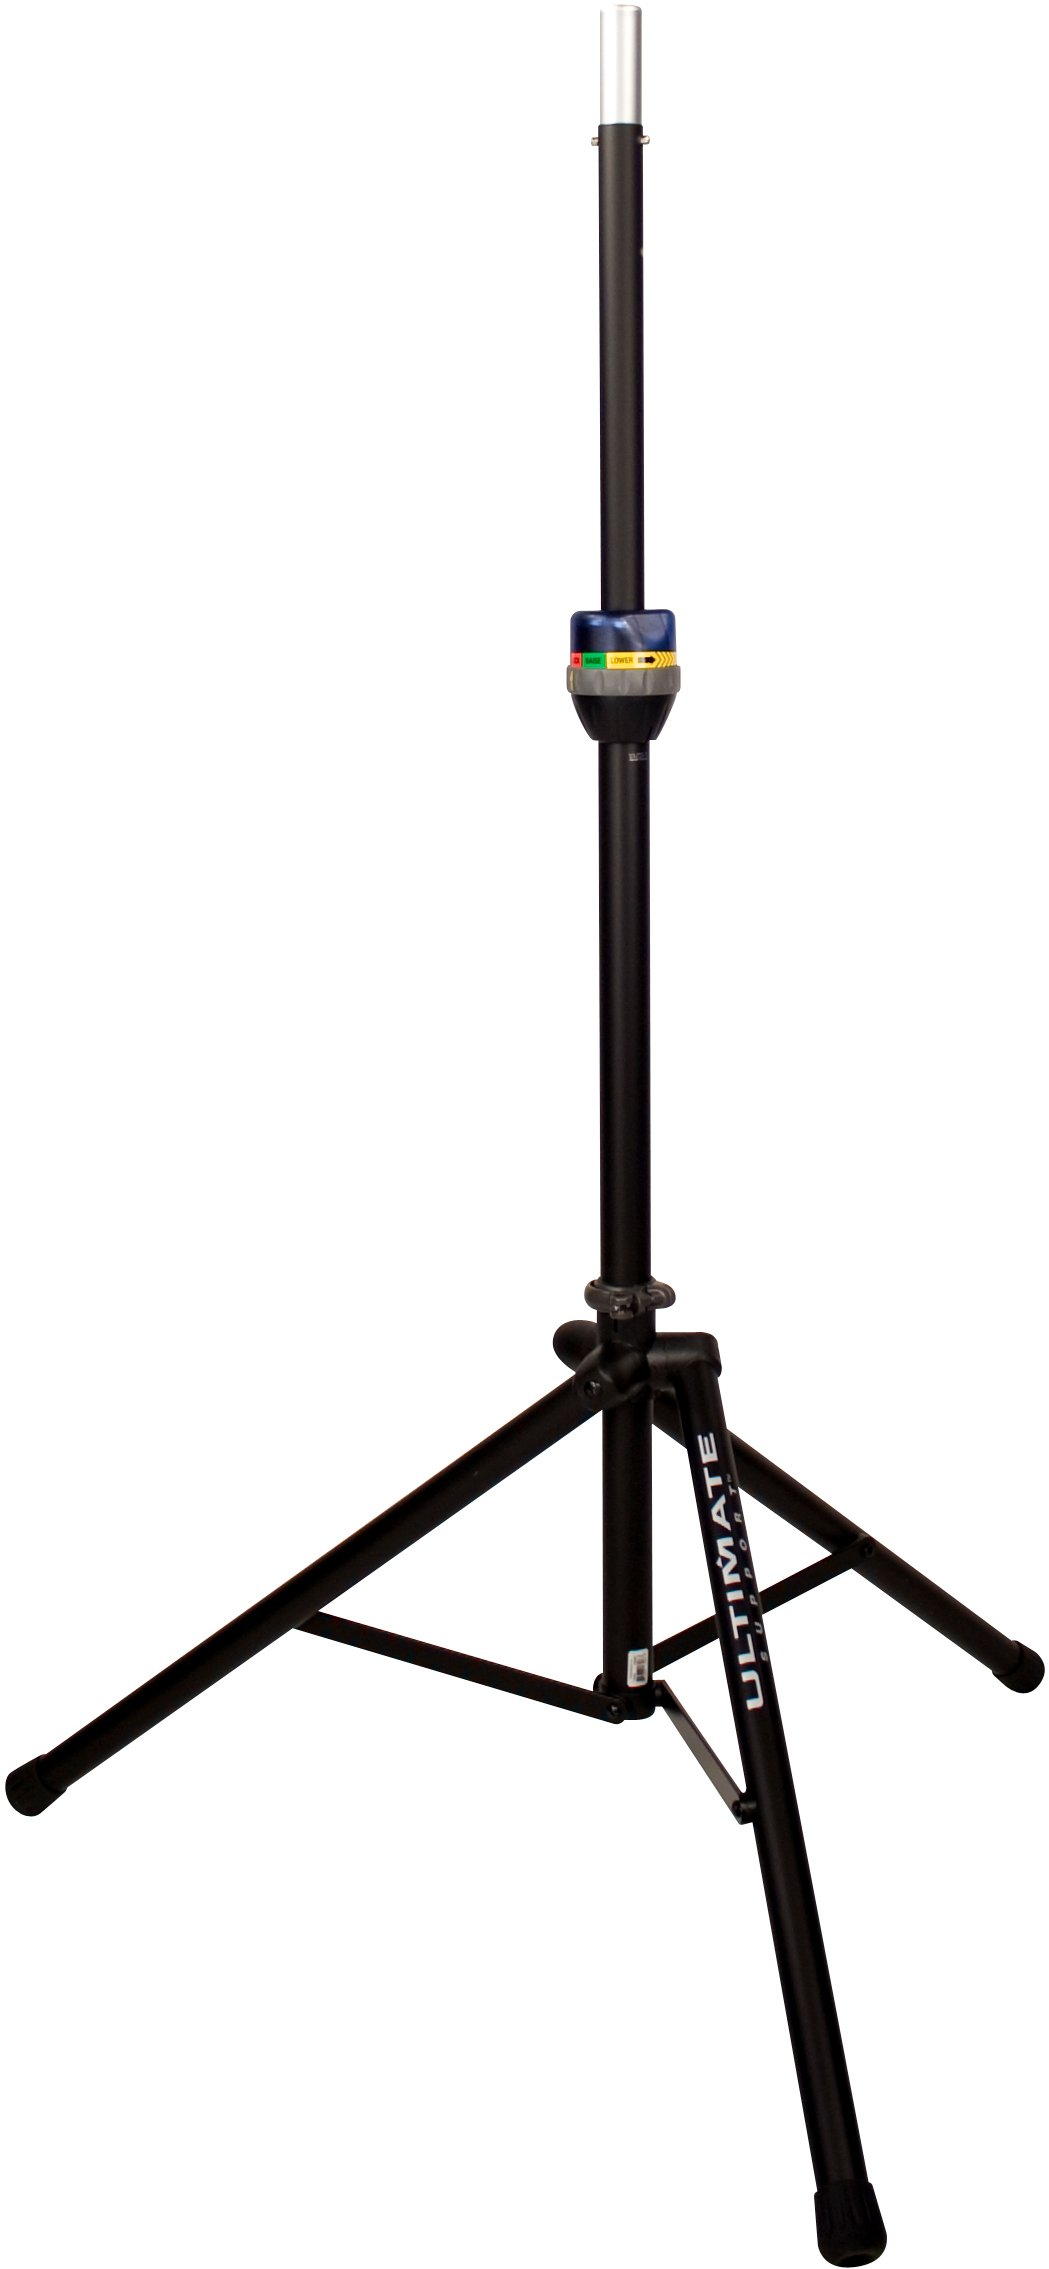 2x TS-90 TeleLock Speaker Stand with Padded Dual Tripod Tote Bag by FP Logistics, Ultimate Support (Image #2)